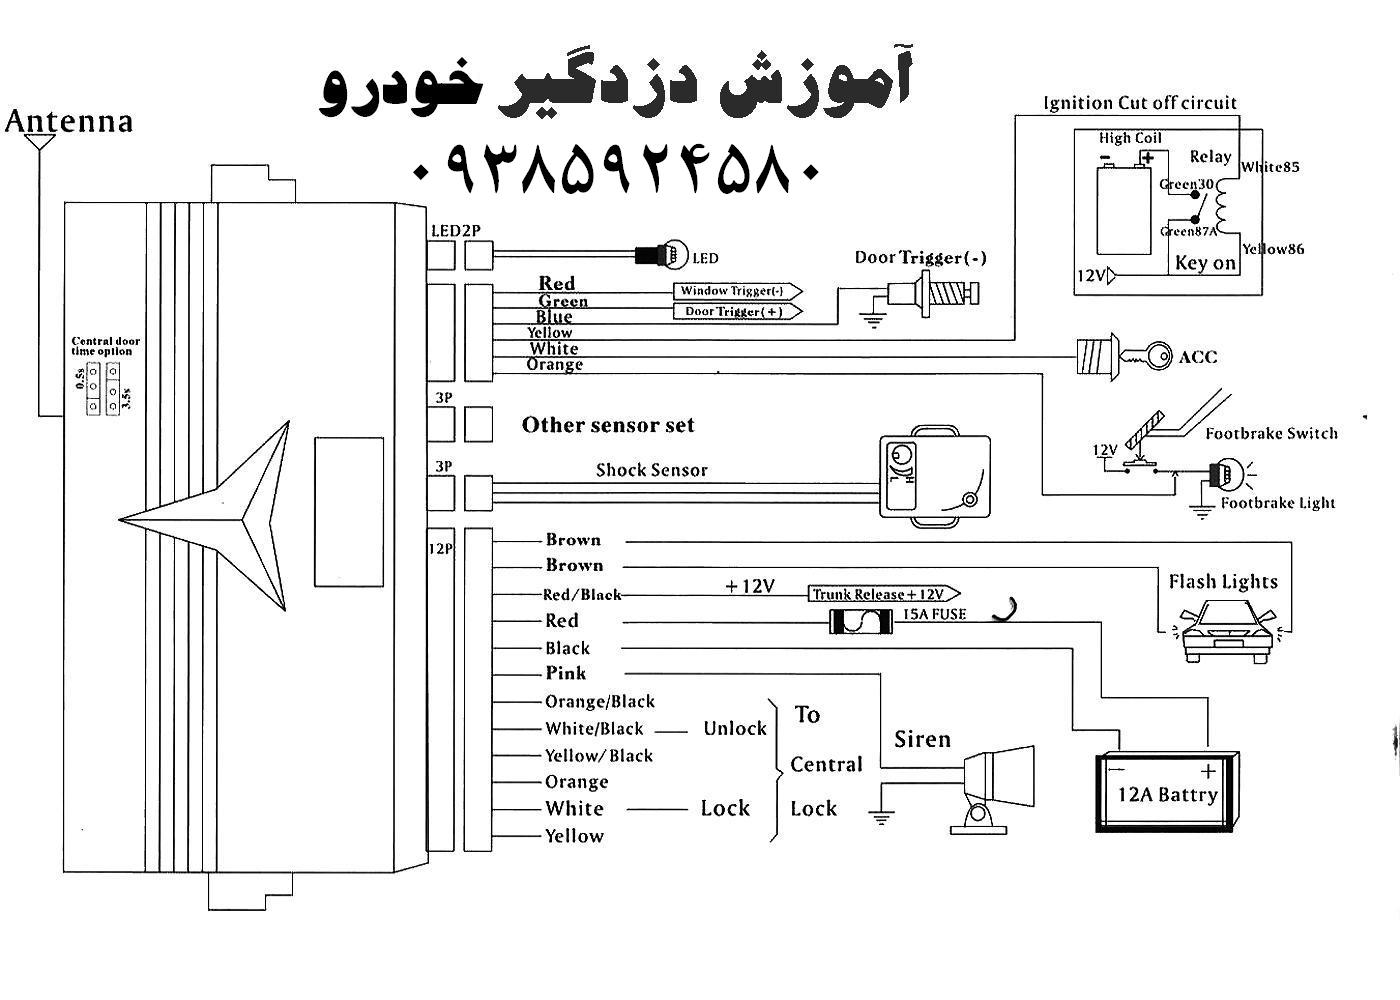 car alarm map (10) wiring diagram for viper car alarm efcaviation com viper car alarm wiring diagram at gsmportal.co